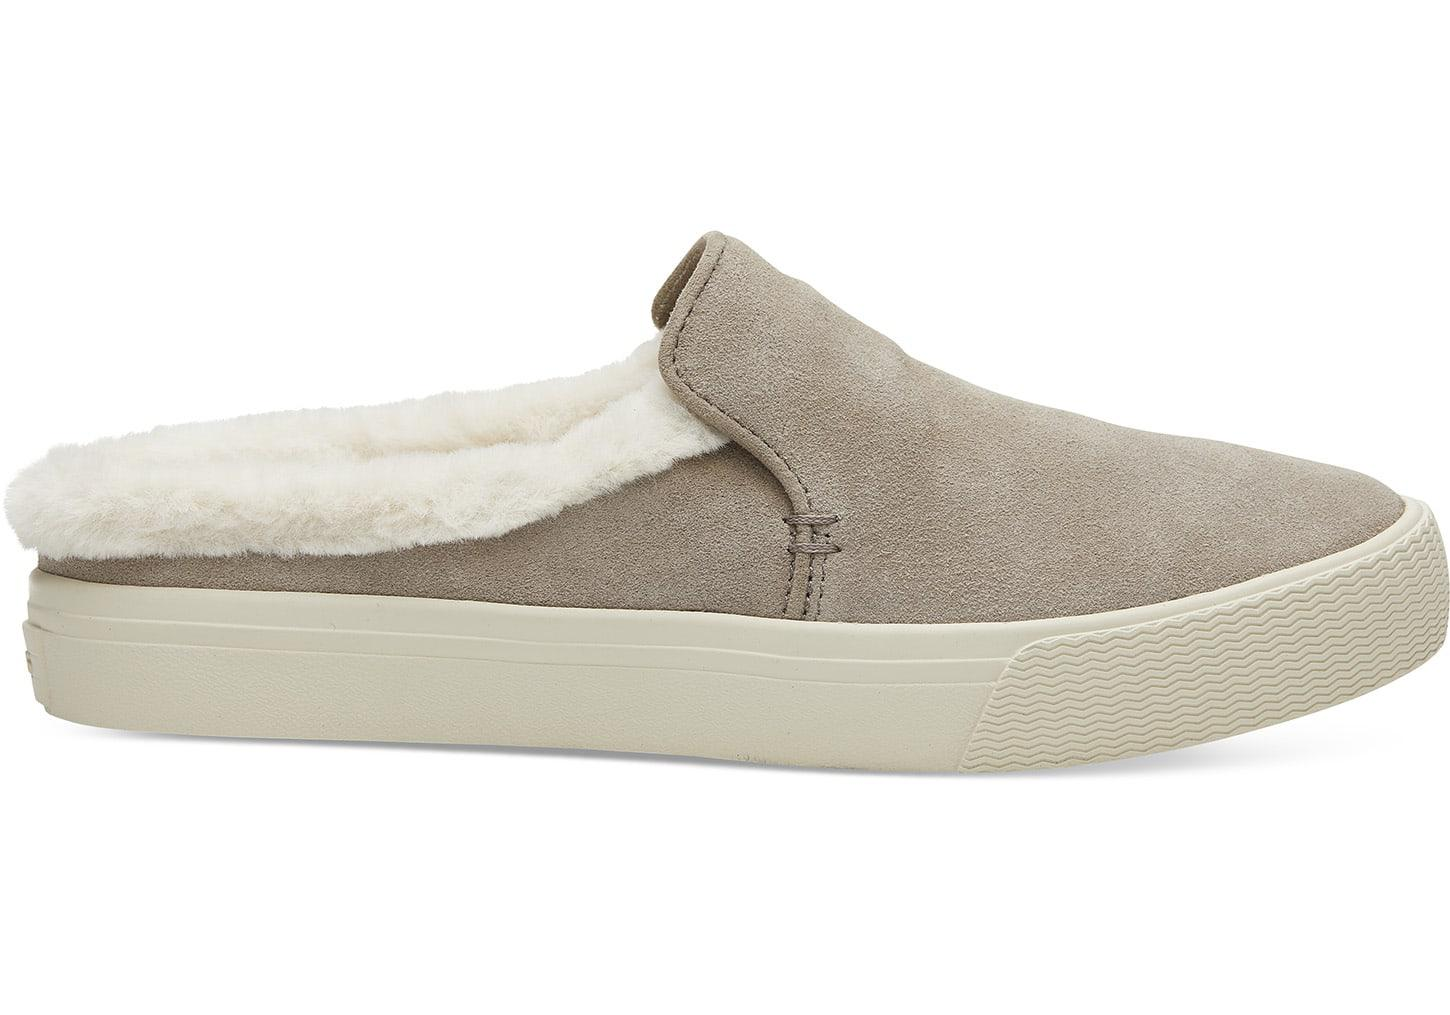 8089c77147ae TOMS Desert Taupe Suede And Faux Fur Women's Sunrise Mule Slip-ons ...